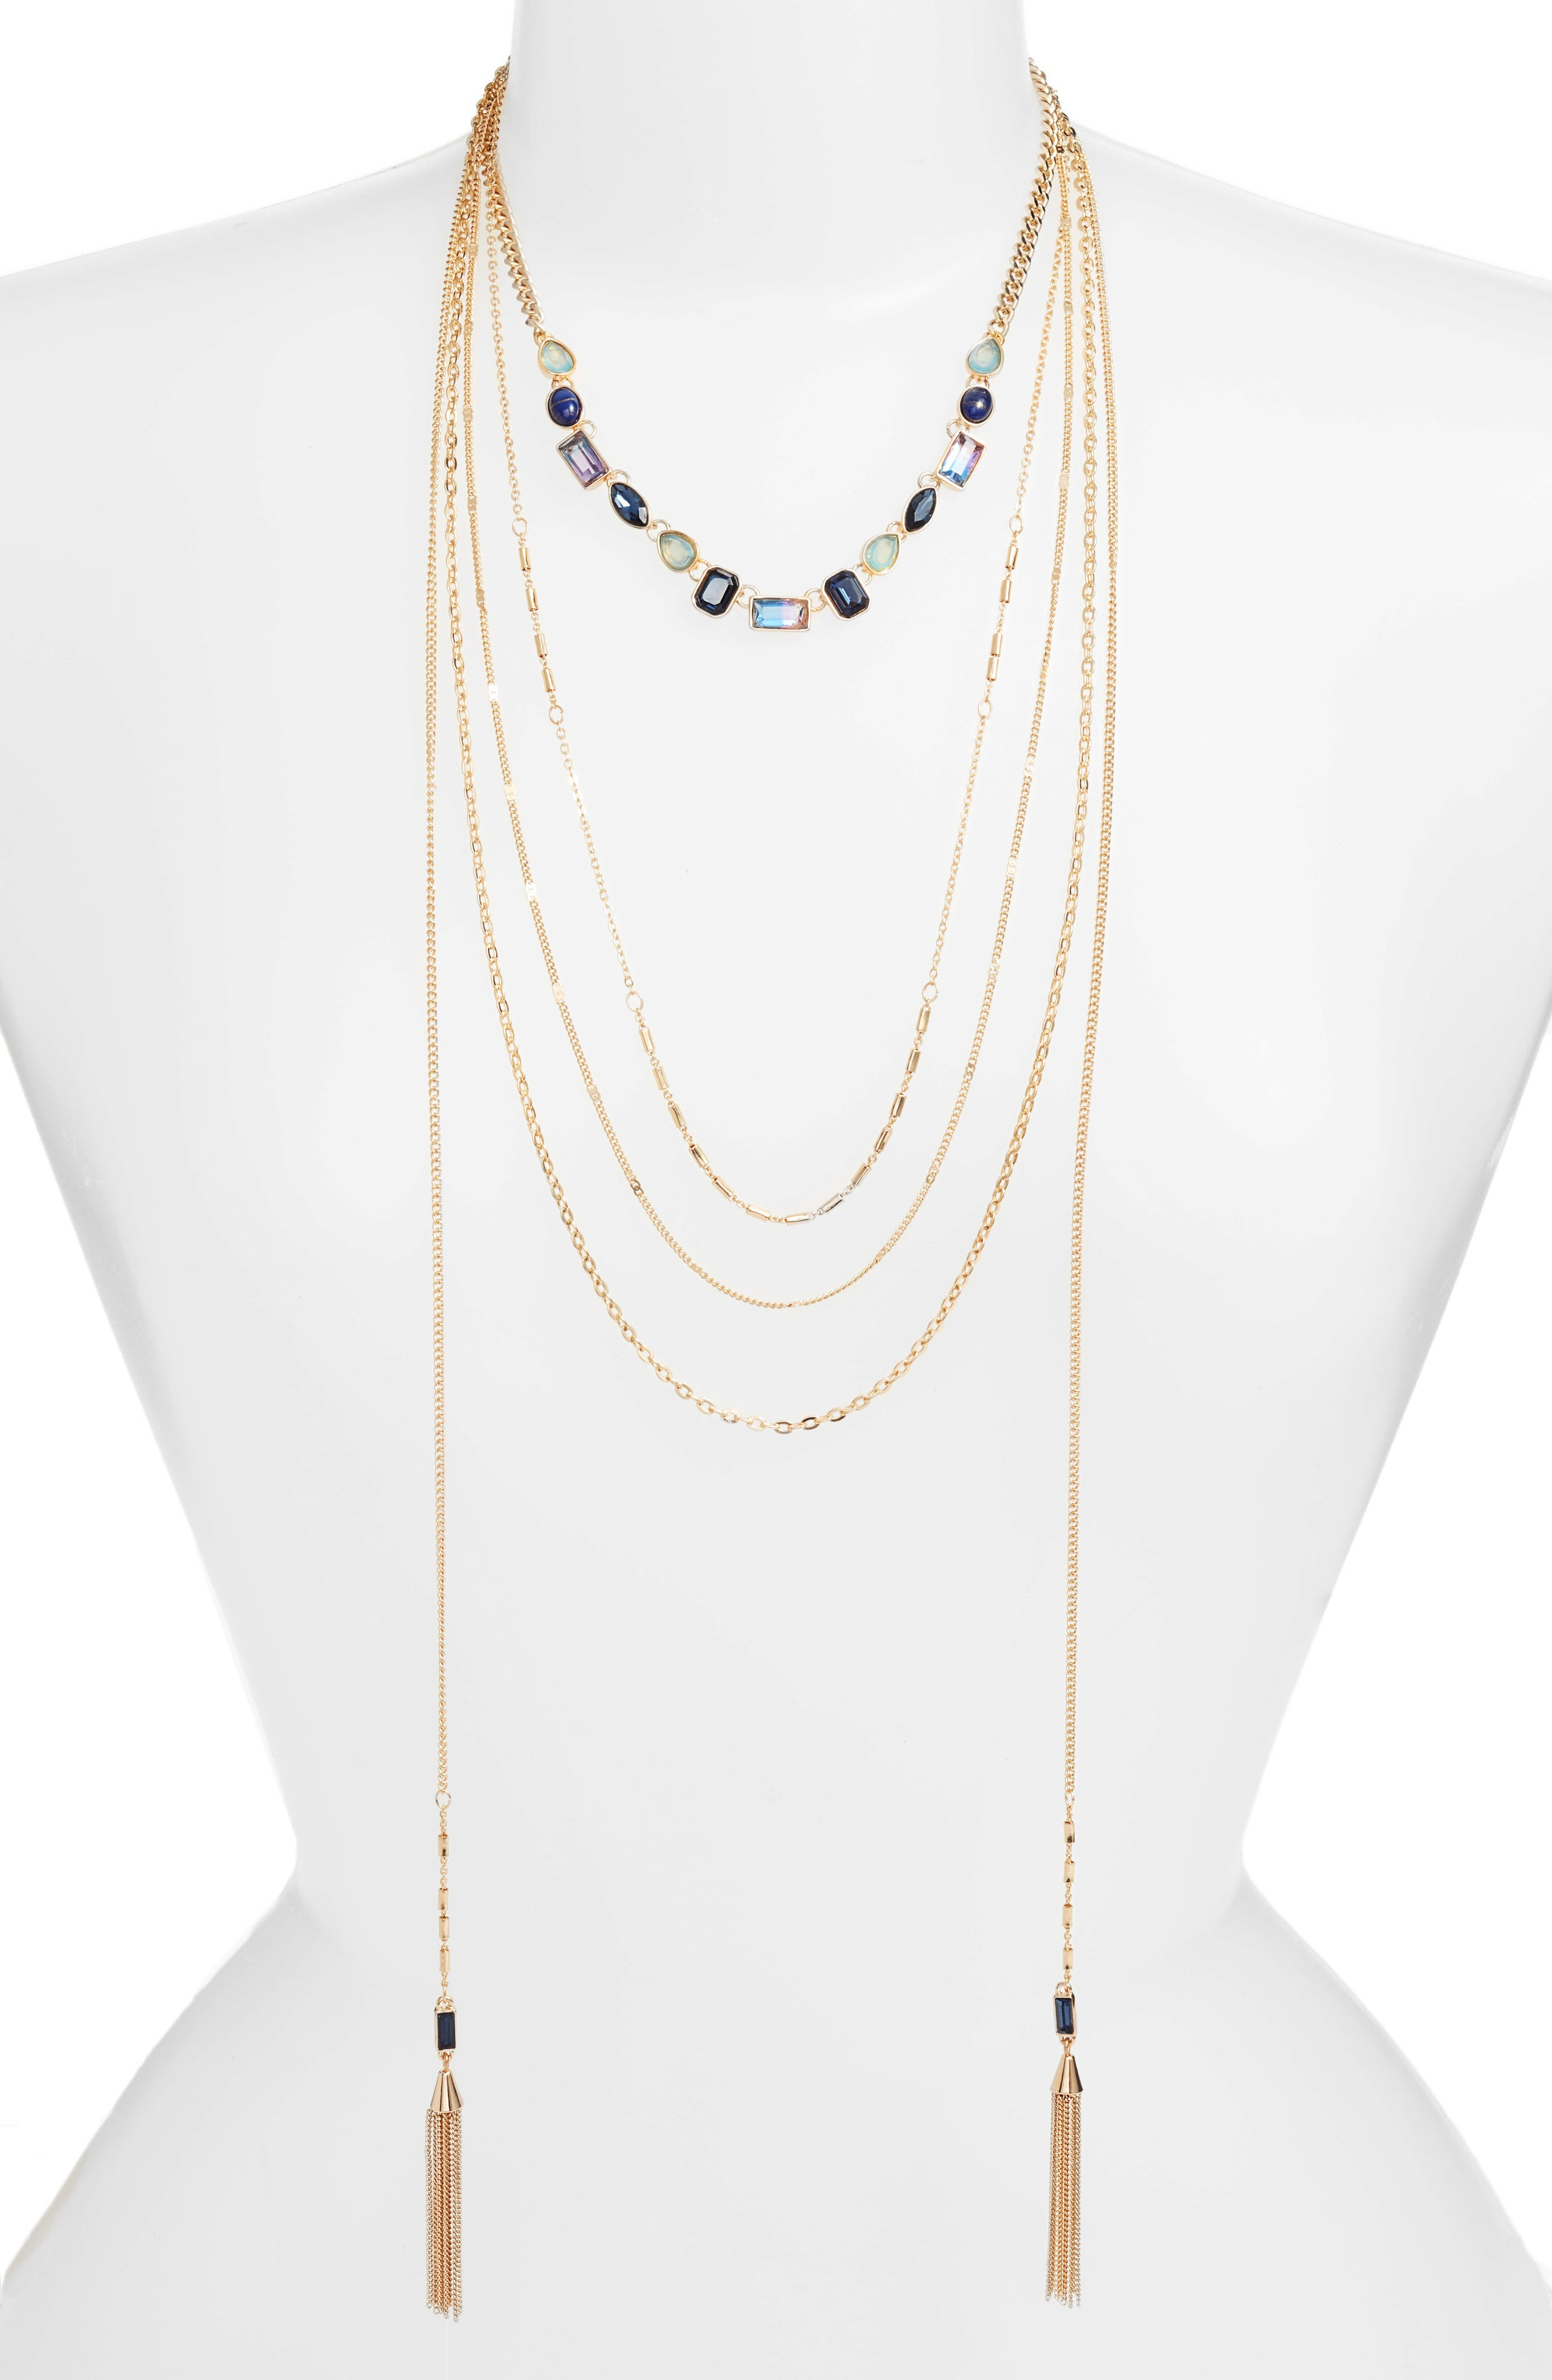 Crystal Multistrand Choker Necklace,                         Main,                         color, Blue Multi- Gold